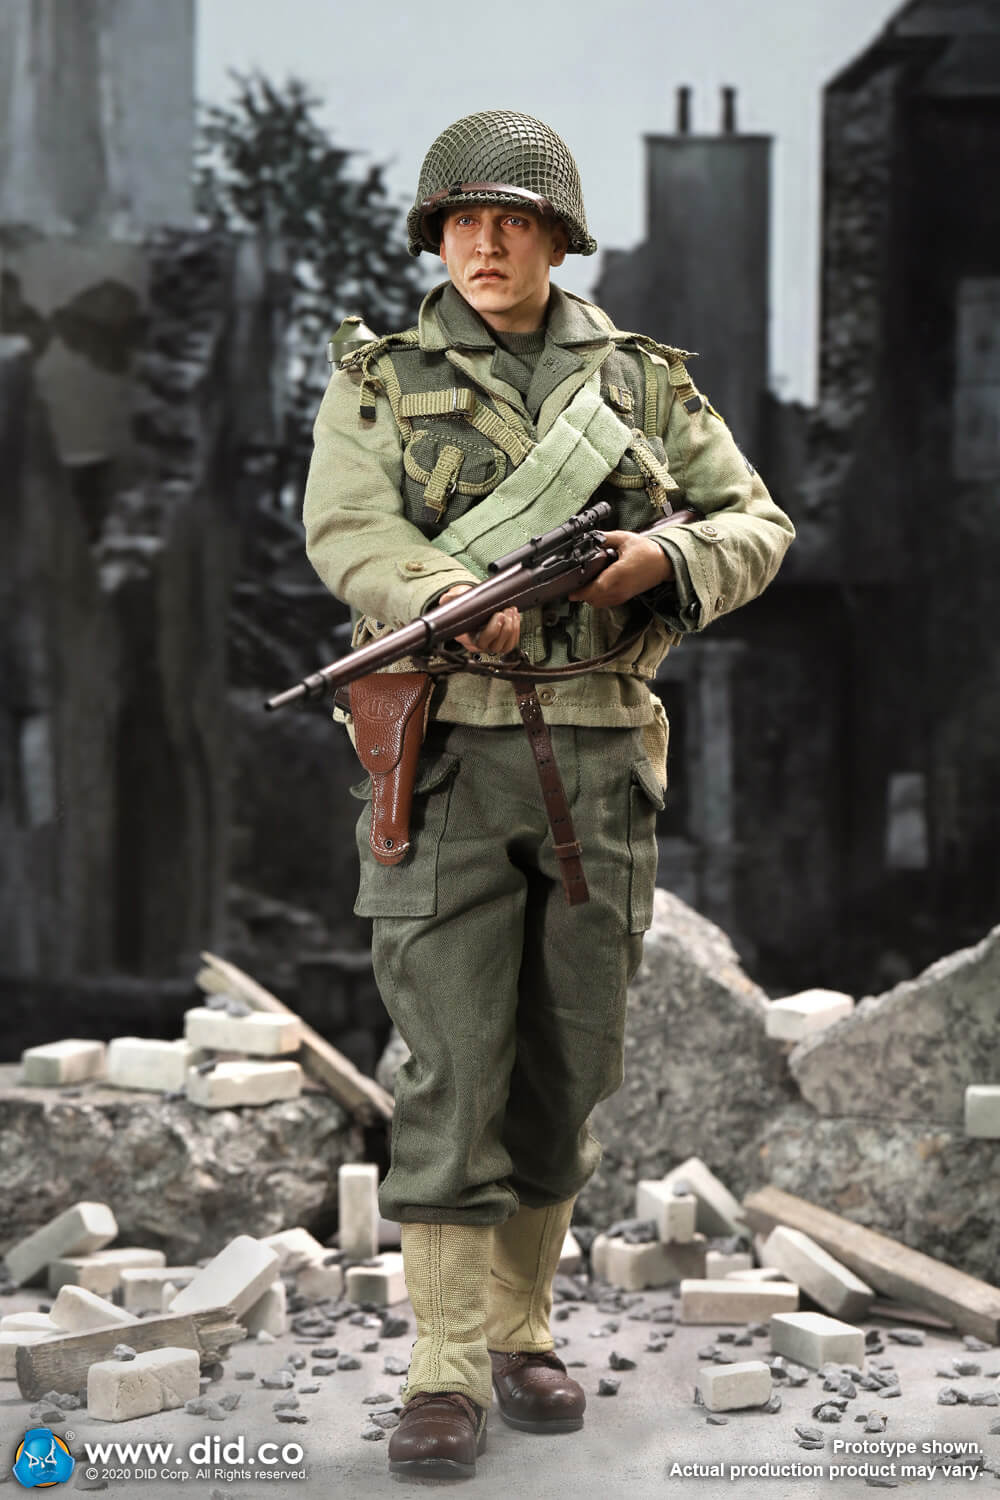 DiD - NEW PRODUCT: DiD: A80144 WWII US 2nd Ranger Battalion Series 4 Private Jackson 4424